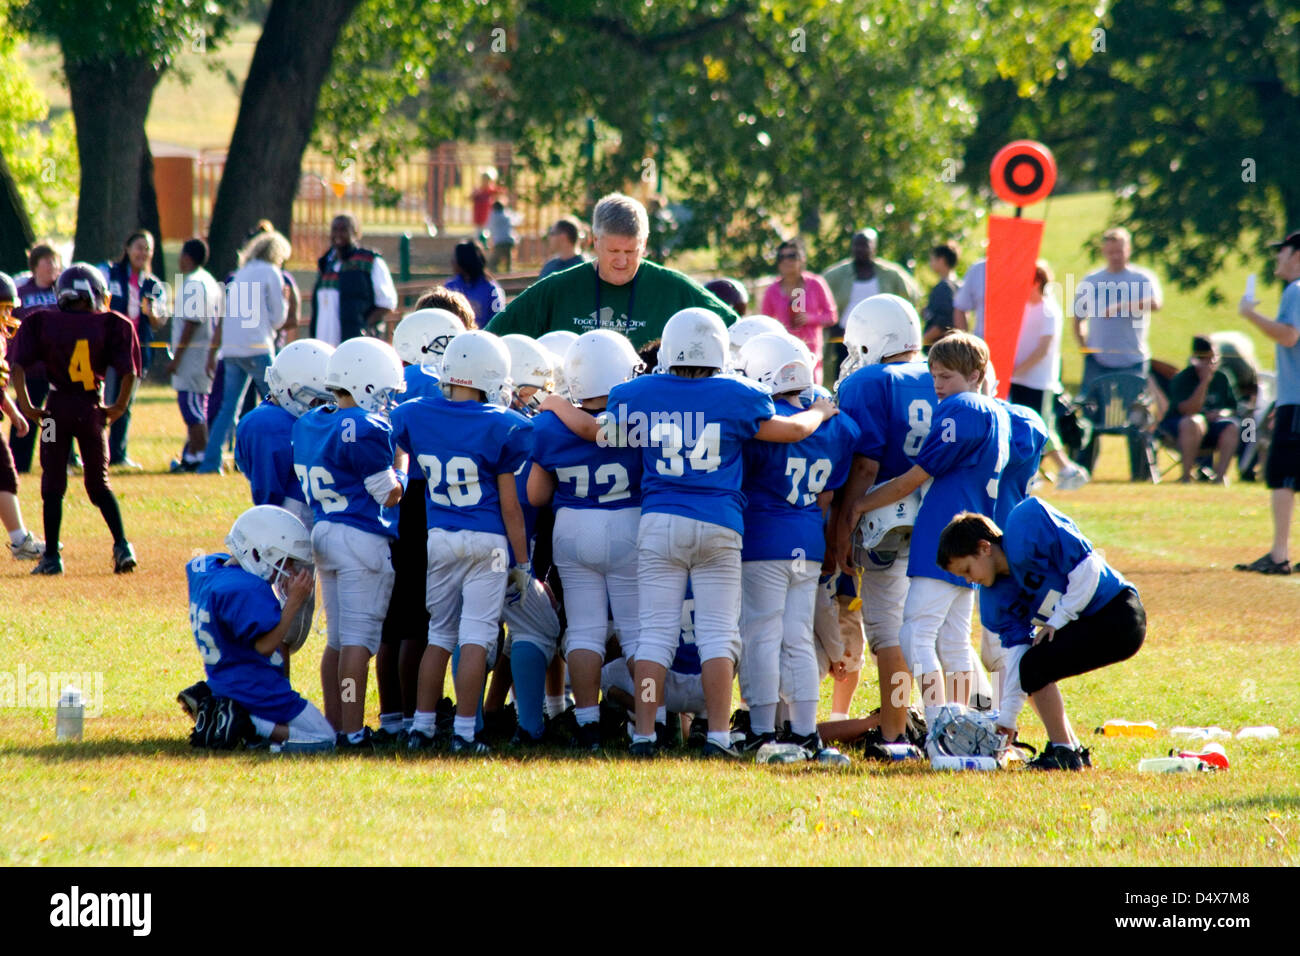 Young football players age 10 huddling around coach listening to his instructions. St Paul Minnesota MN USA - Stock Image